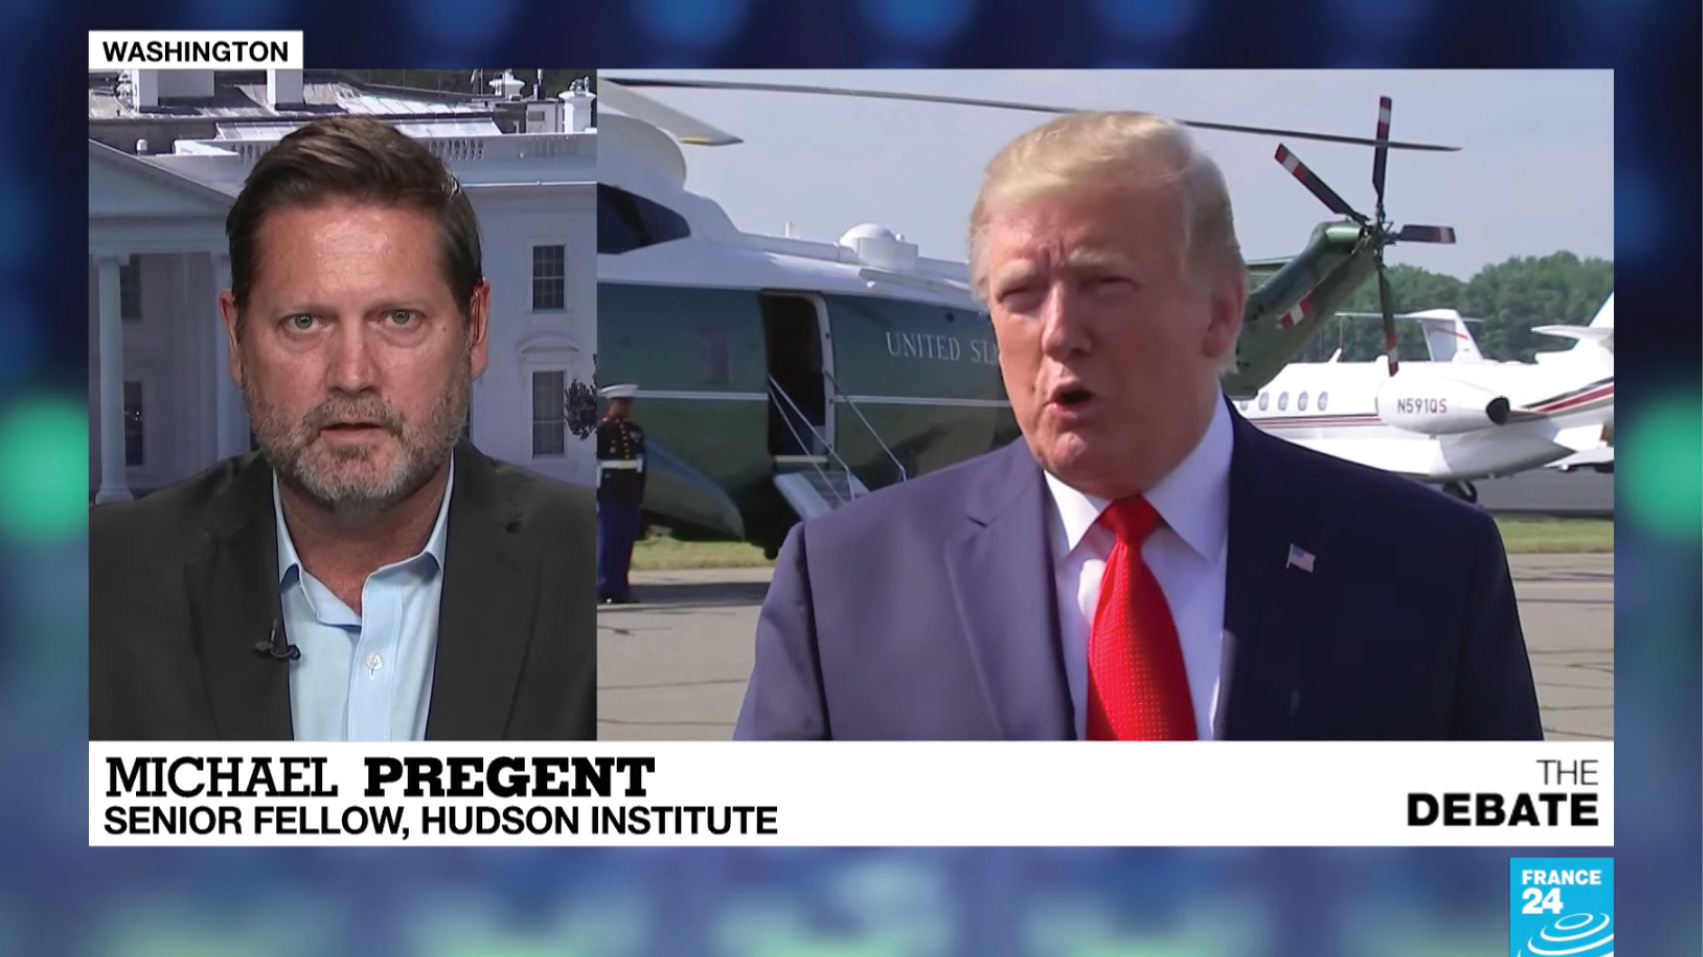 Mike Pregent discusses whether or not Iran will make any new decisions with the regime by July 15th and new threats they've made against the international community.